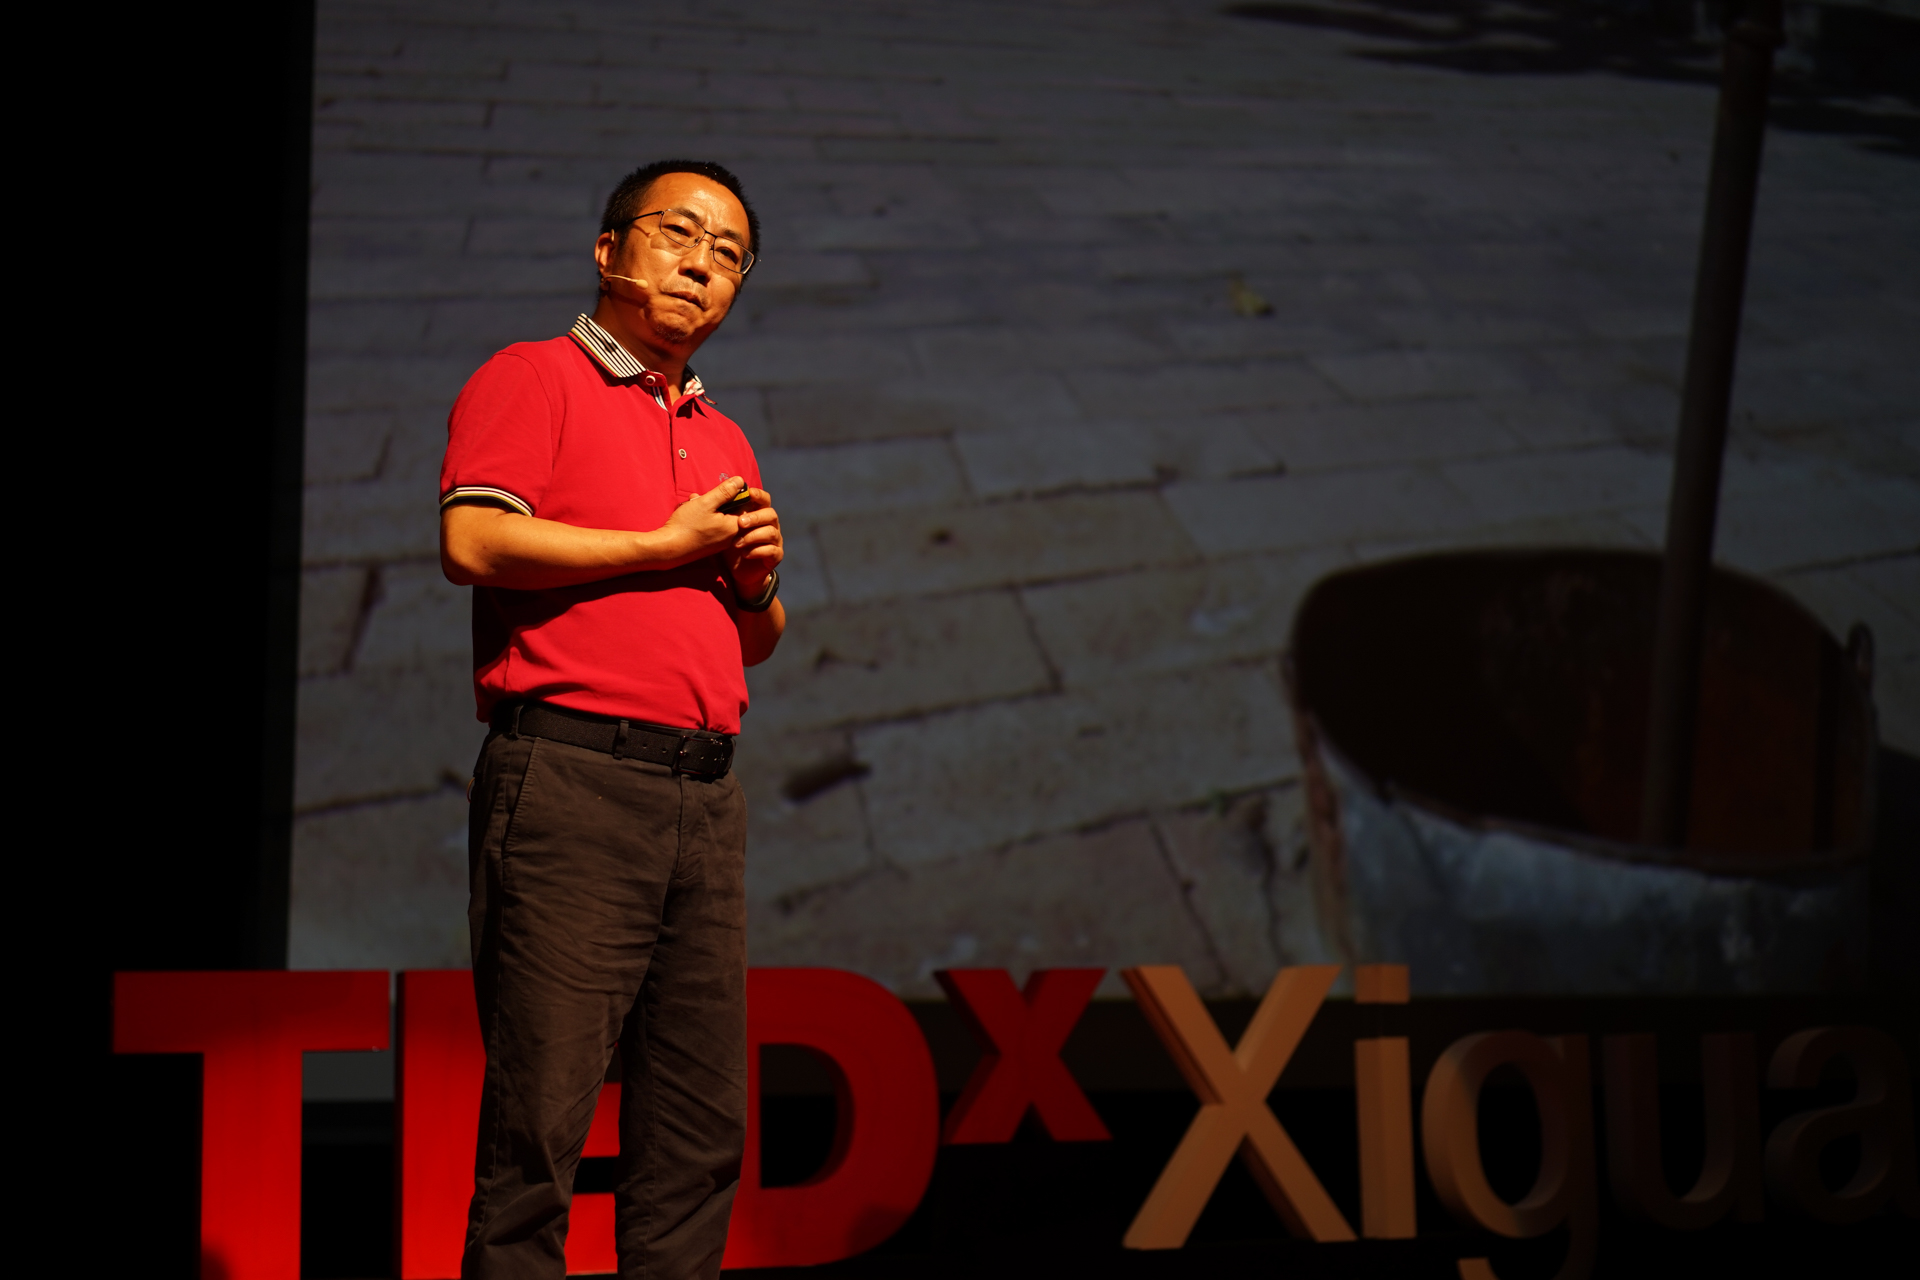 Jian Zhou: A new way of supporting rural schools - There is a huge gap between the haves and have-nots in China, this is heavily reflected in education. Jian and his team work with schools in rural areas in realizing their dreams – literally. He thinks other than giving what we think the rural schools need or equipping them with whatever the city schools have, there is a better way to help them. Jian Zhou is the founder of the Beijing Gan'en Charity Foundation, and also one of the founders of